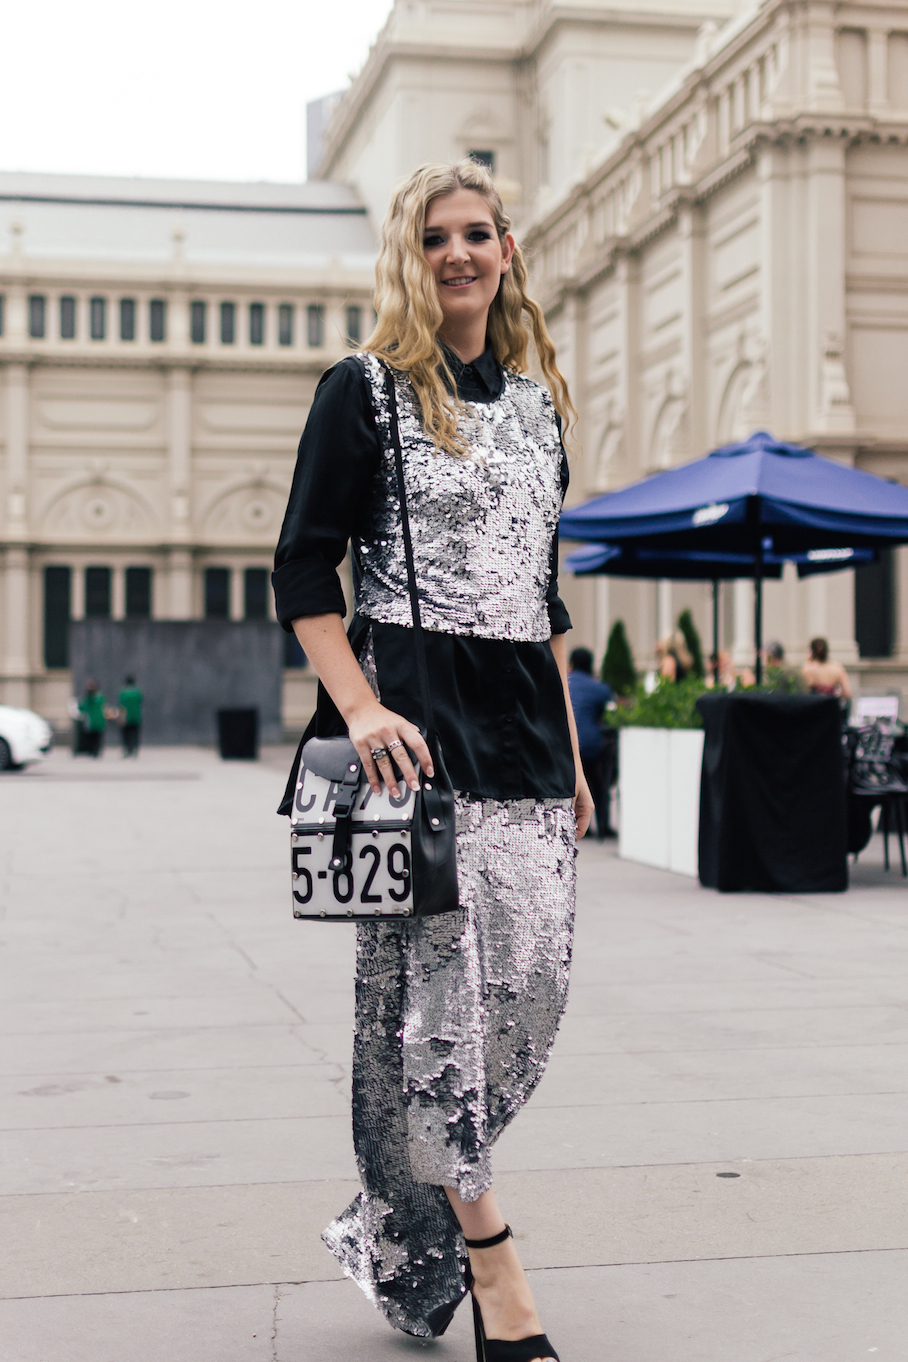 "Vic: Jonté Pike, <a href=""http://www.jontedesigns.com/"" target=""_blank"">Designer</a>, Fashion Plaza at VAMFF, wearing her own design and bag ""that I bought from a street vendor in South Africa"". Shoes from Betts ."